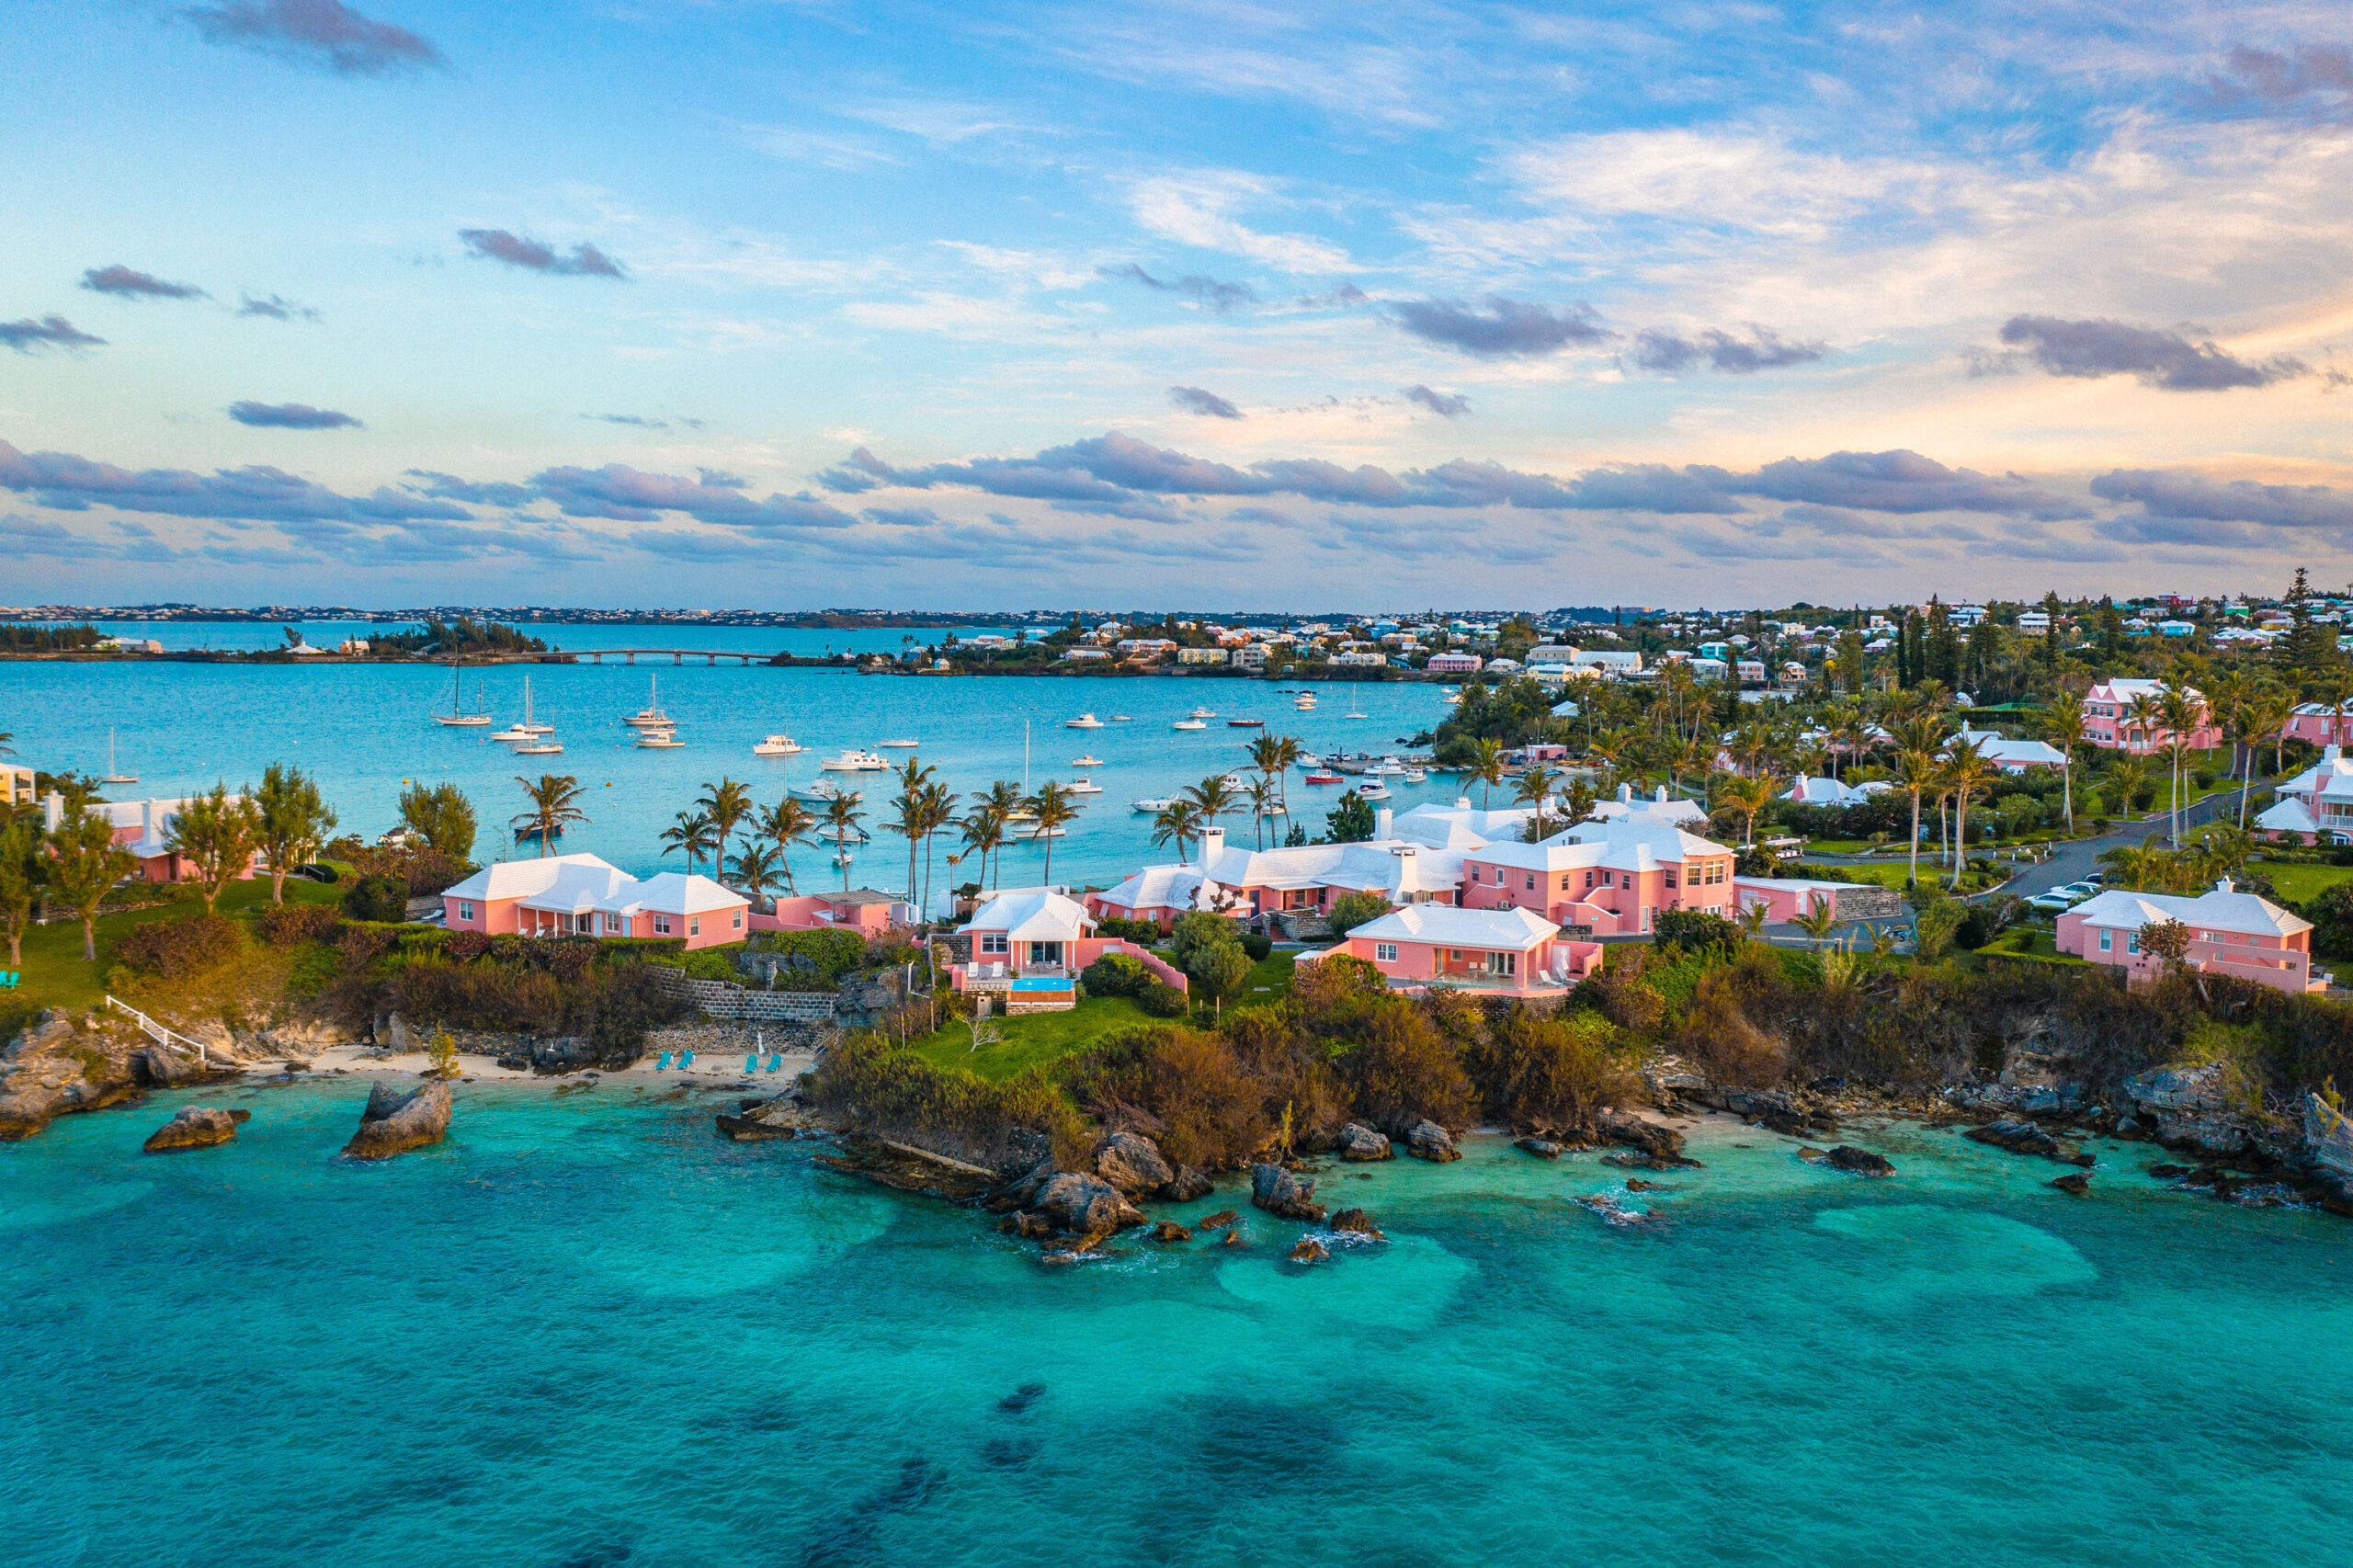 <i>Cavan Images/Getty Images</i><br/>Antigua and Barbuda in the Caribbean and Bermuda in the Atlantic were added to the